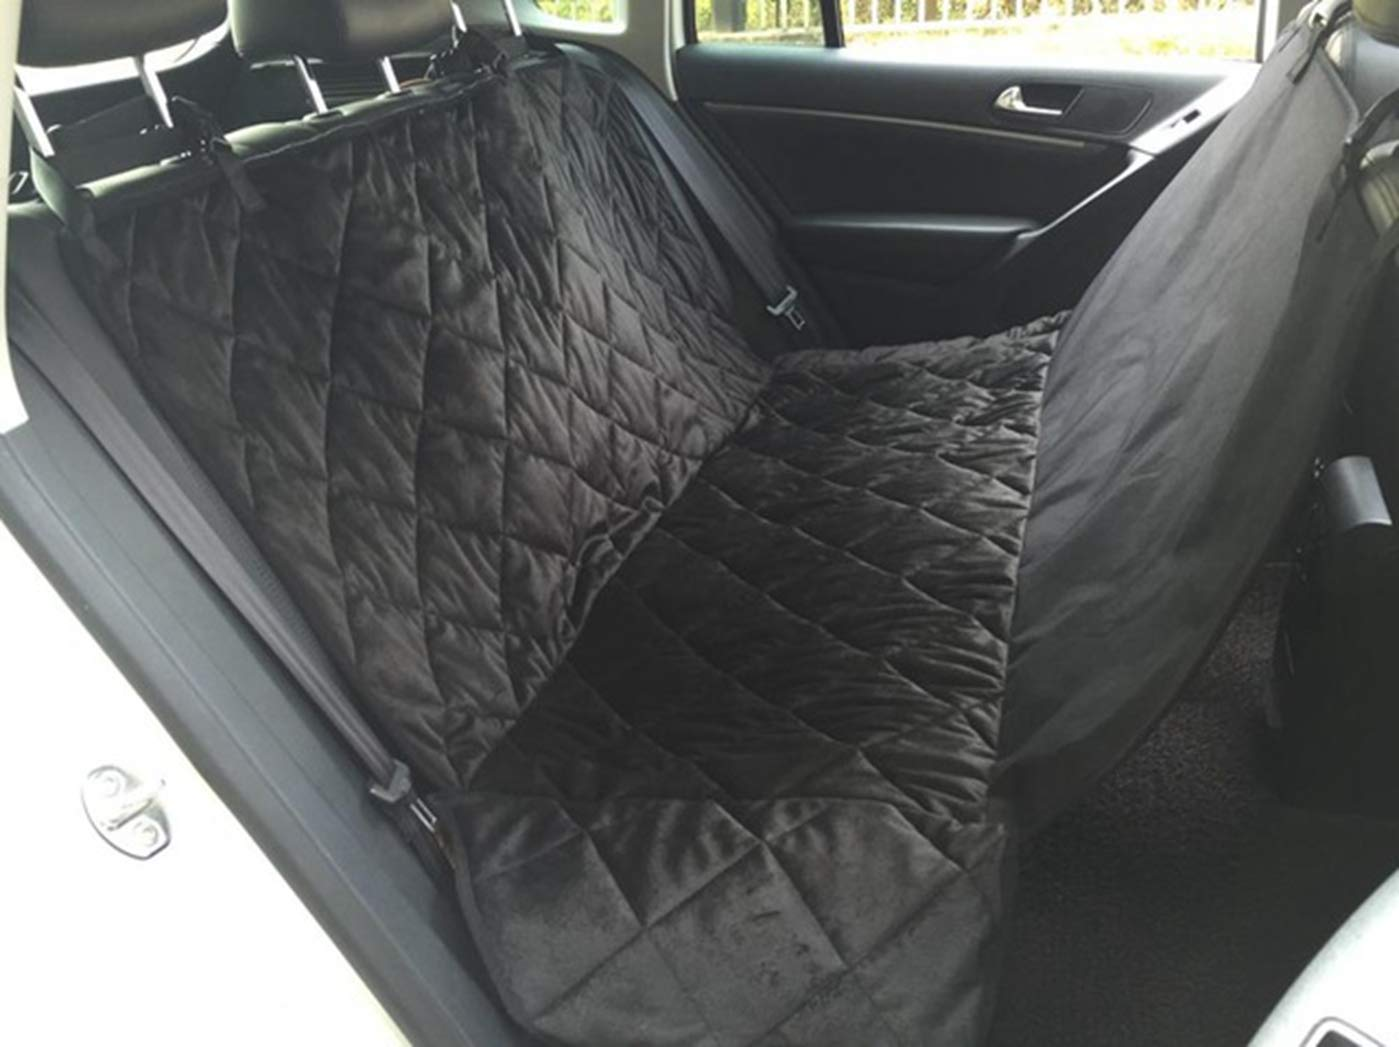 BLACK M BLACK M SENERY Pet Dog Car Seat Cover,Car Boot Pet Seat Waterproof Short Plush Quilted Car Interior Travel Accessories